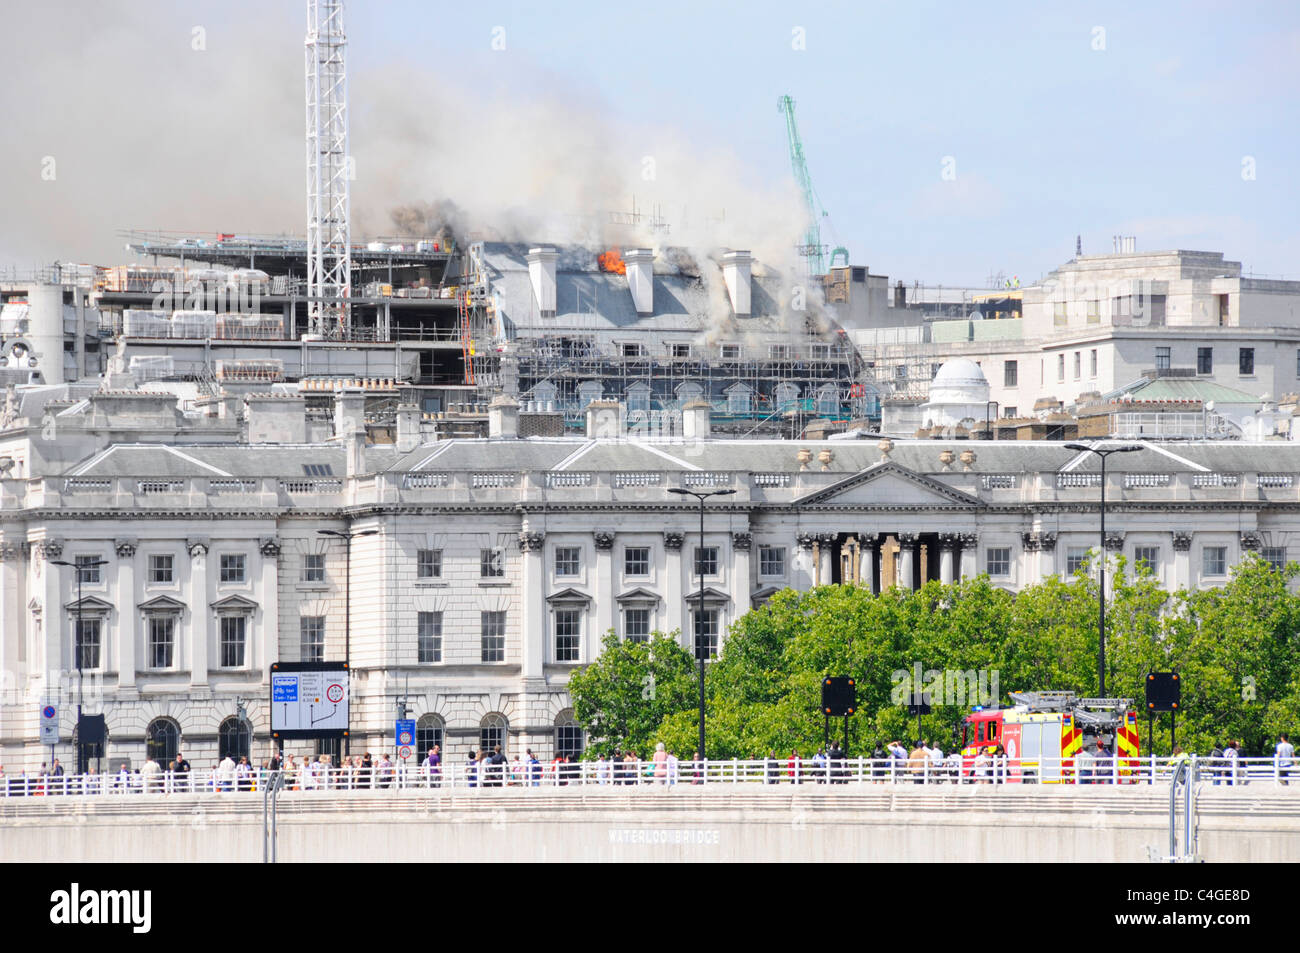 Marconi House Roof On Fire At Construction Site In Aldwych